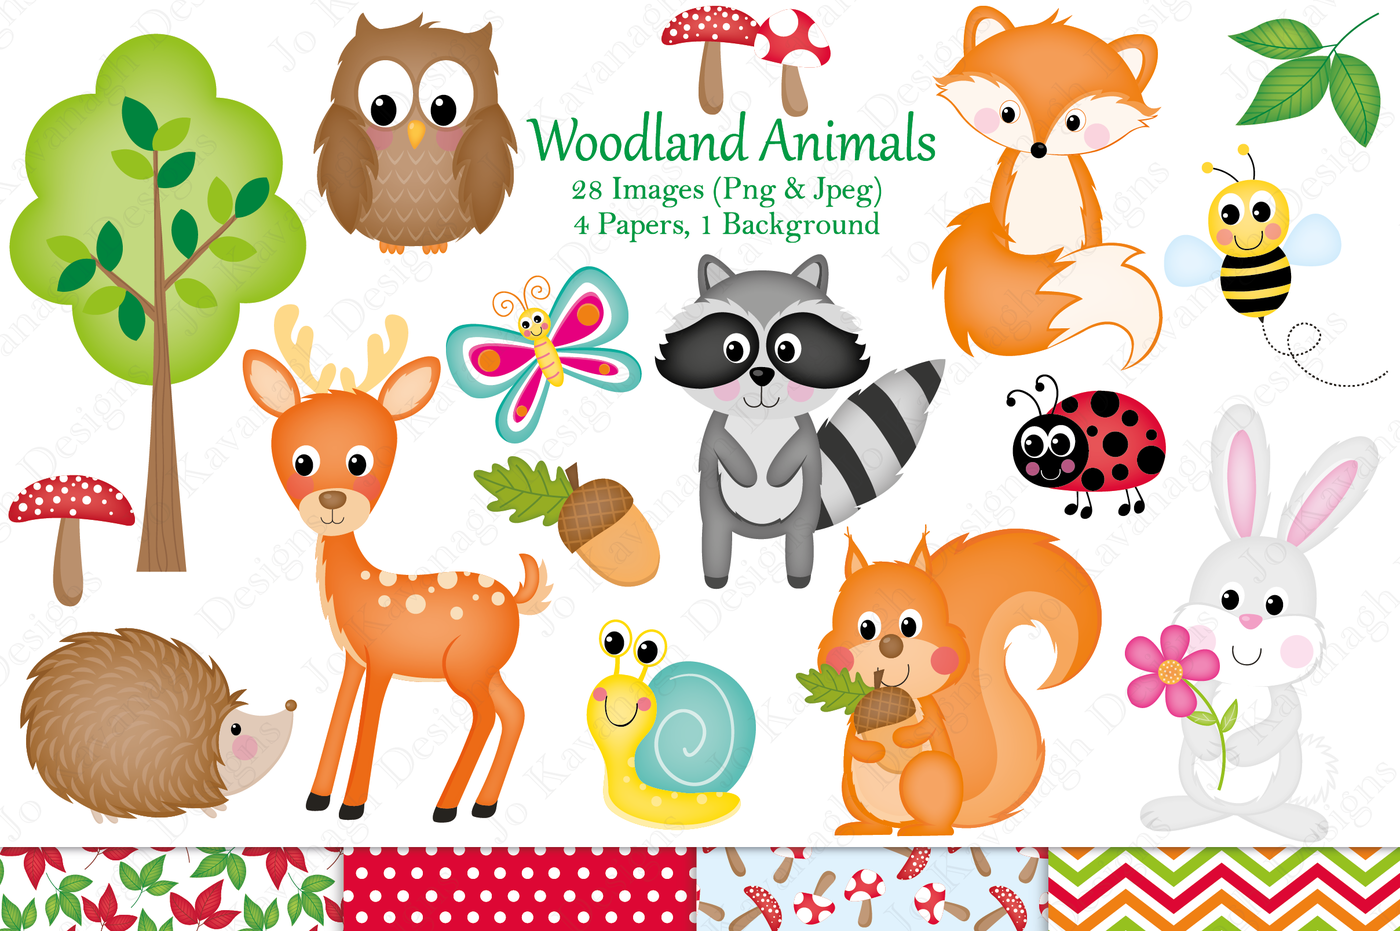 Woodland animals clipart,Woodland animal graphics.